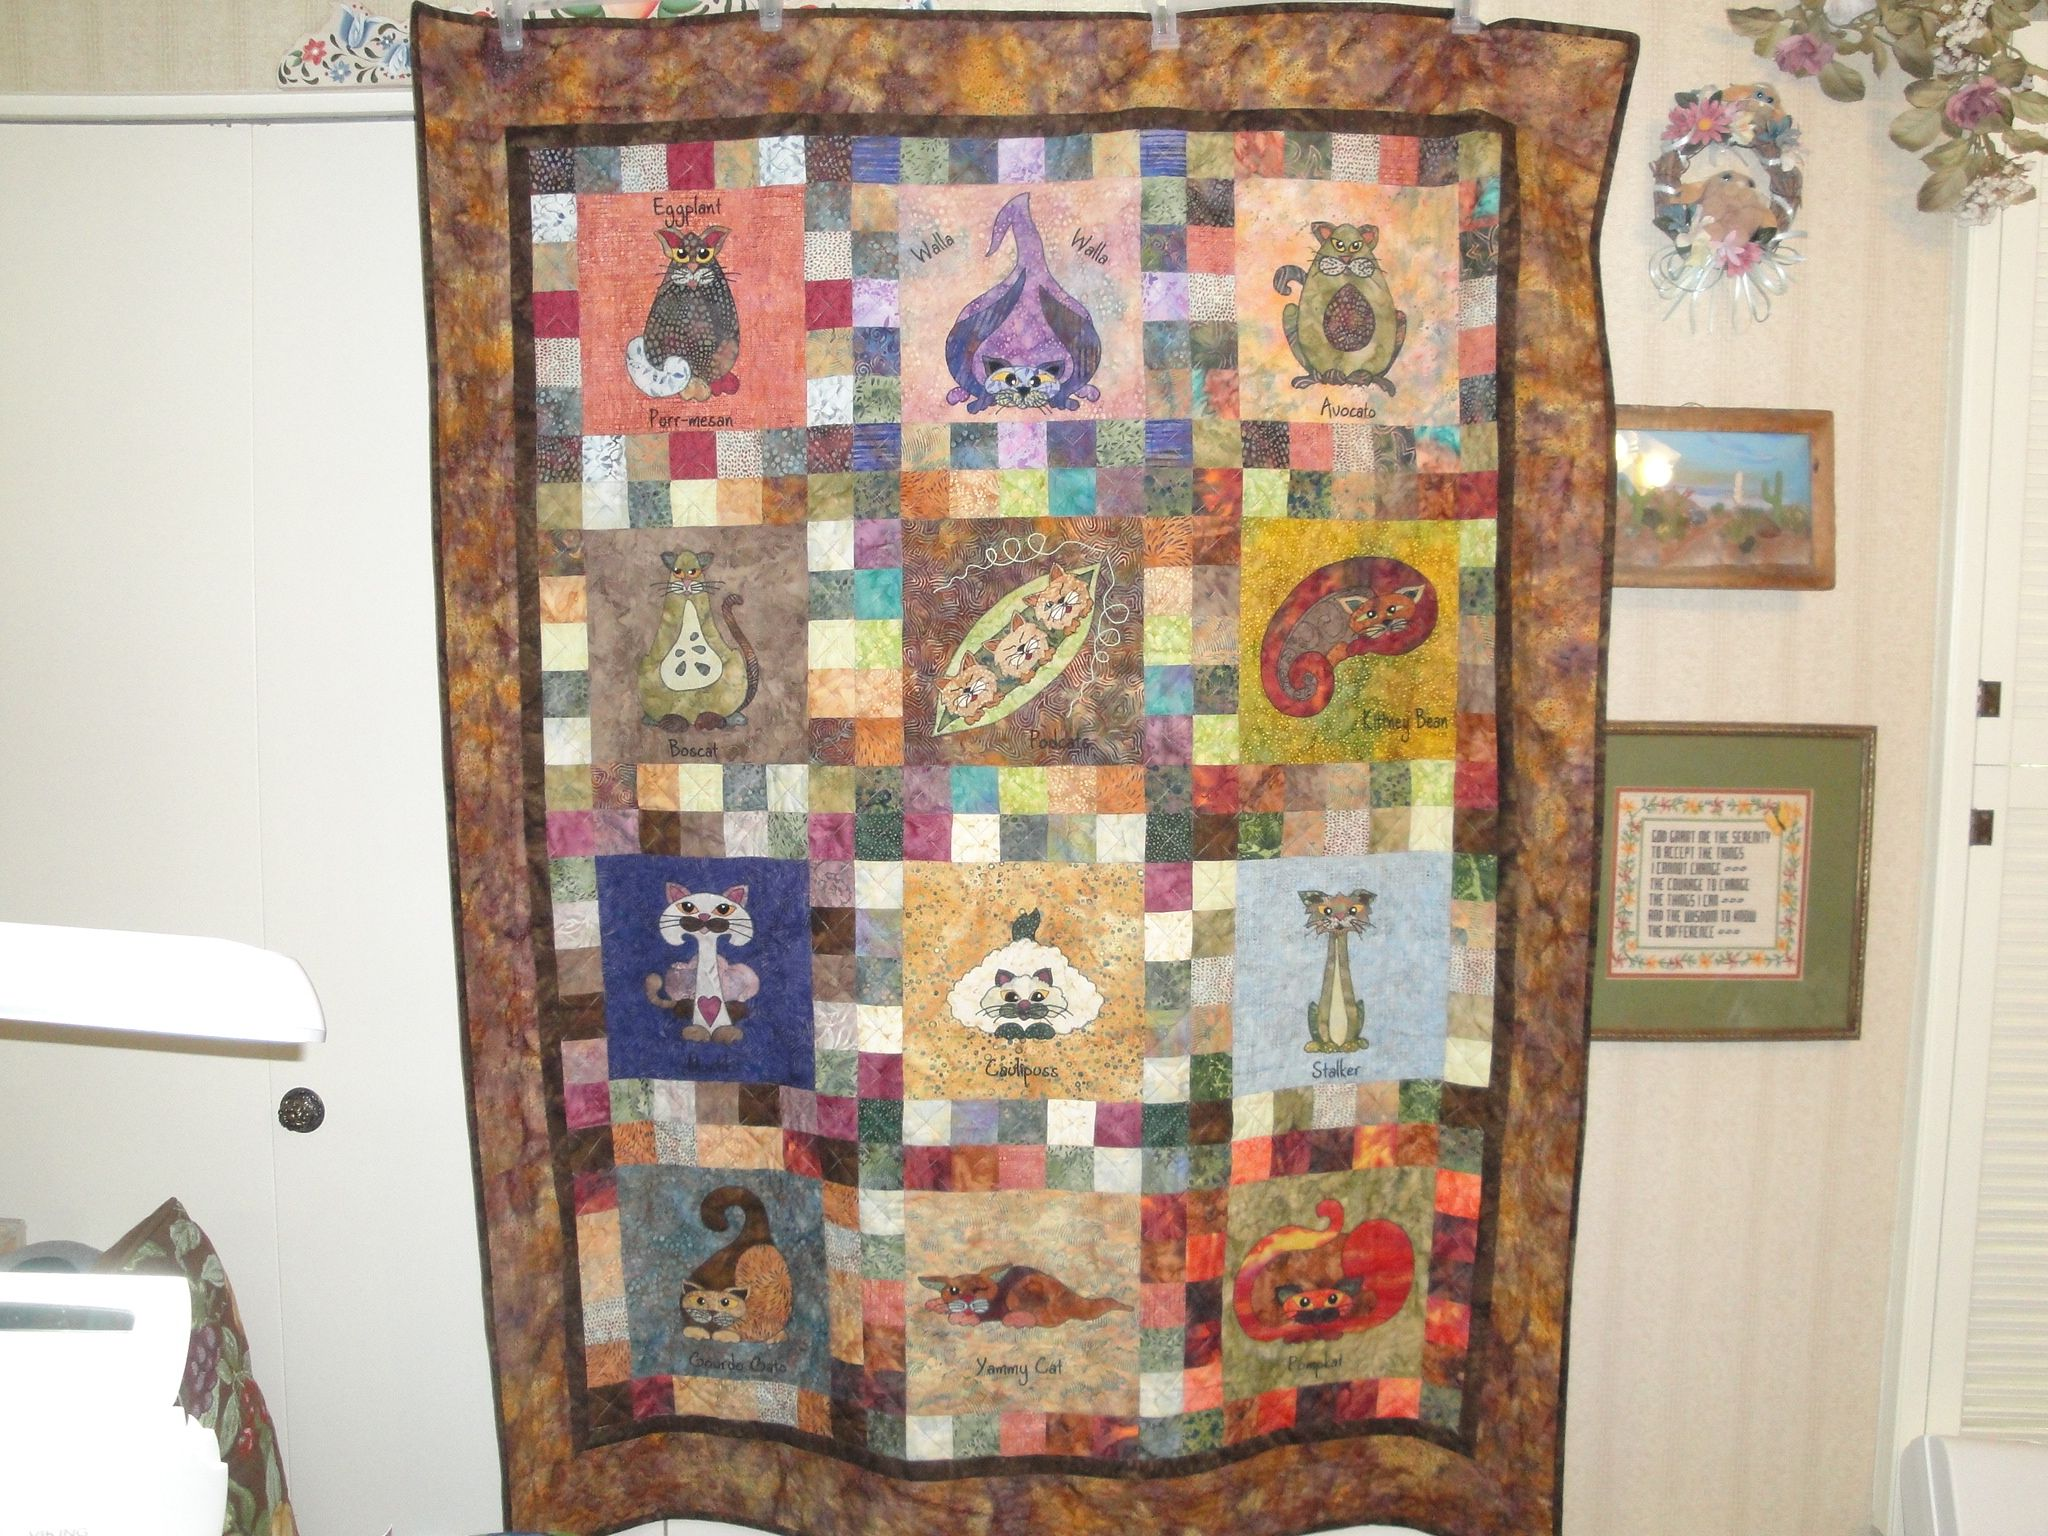 7/20/2013 Veggie Cats Quilt donated to The Cat House on the Kings, Parlier, CA - Raffled in May 2015 & netted $5,000